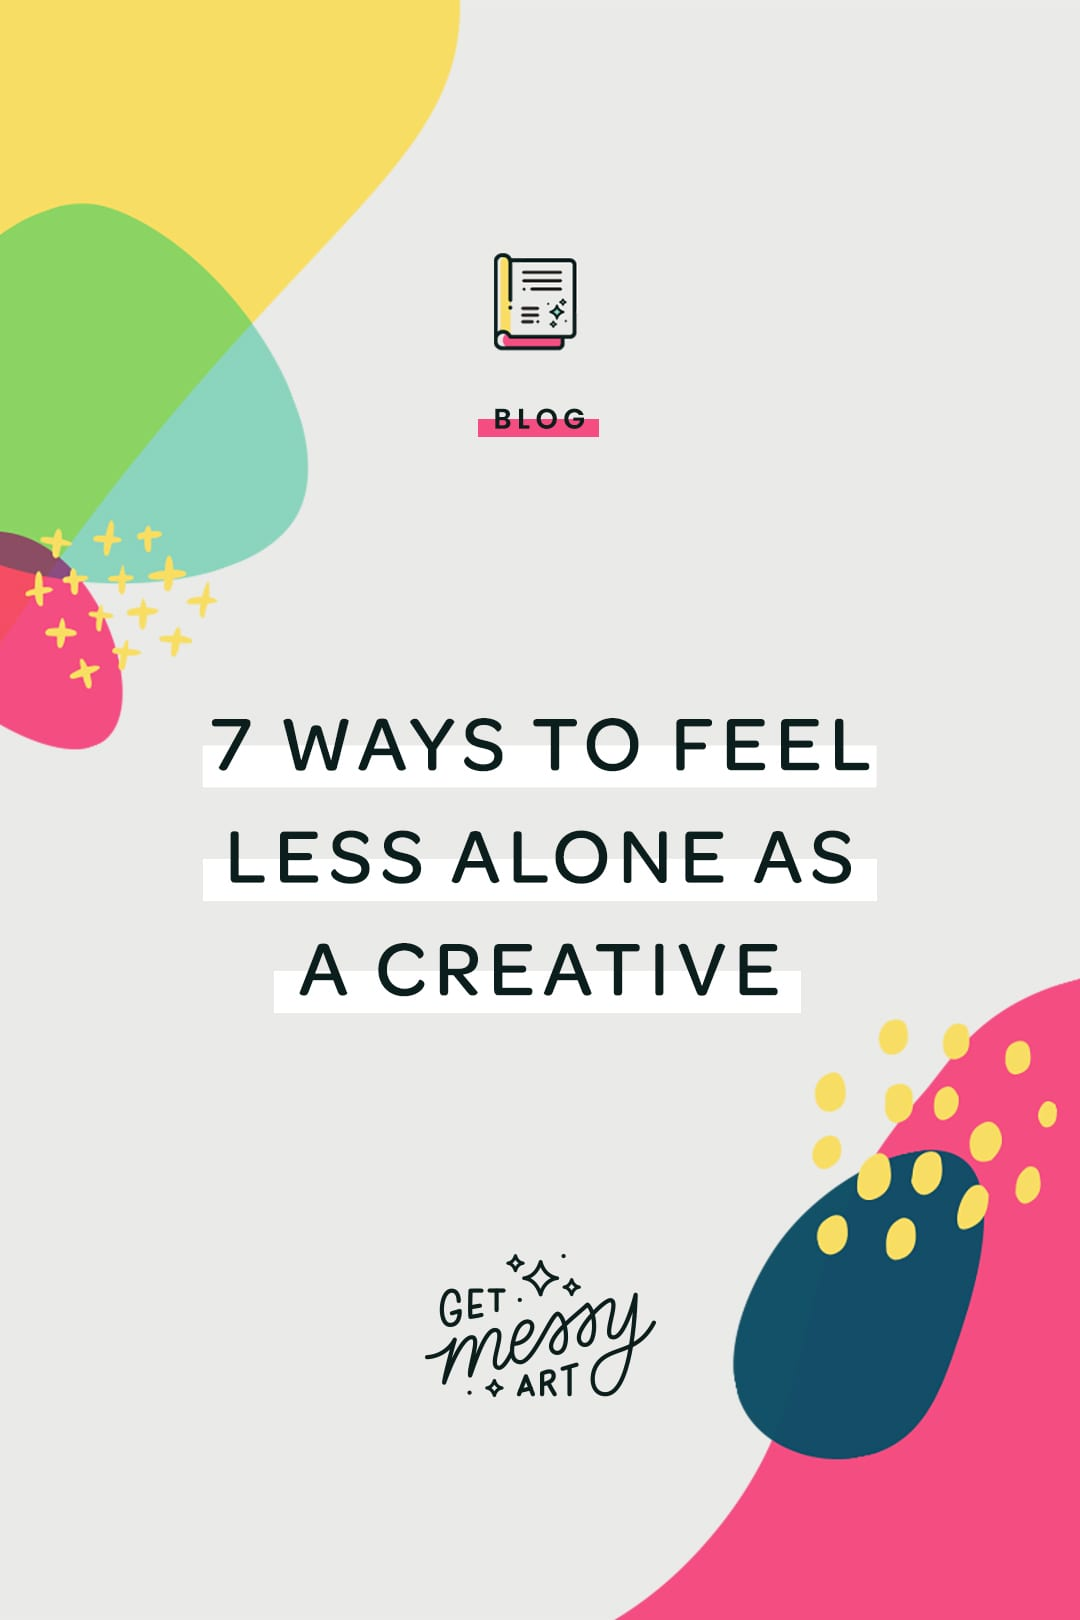 7 ways to feel less alone as a creative